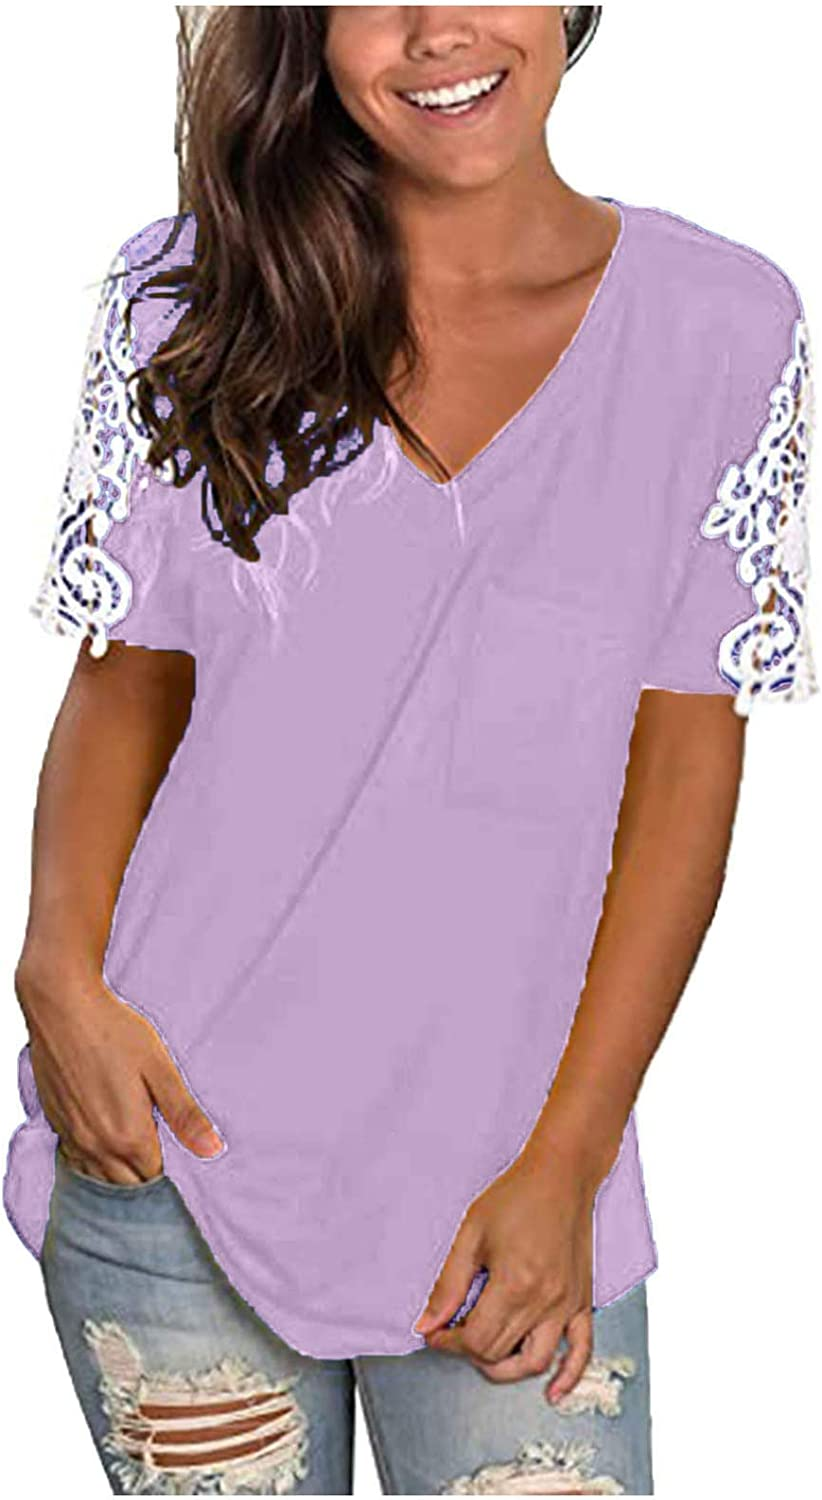 Lace Splicing Tshirt for Women V Neck T Shirt Short Sleeve Tshirt Solid Color Blouse with Pocket